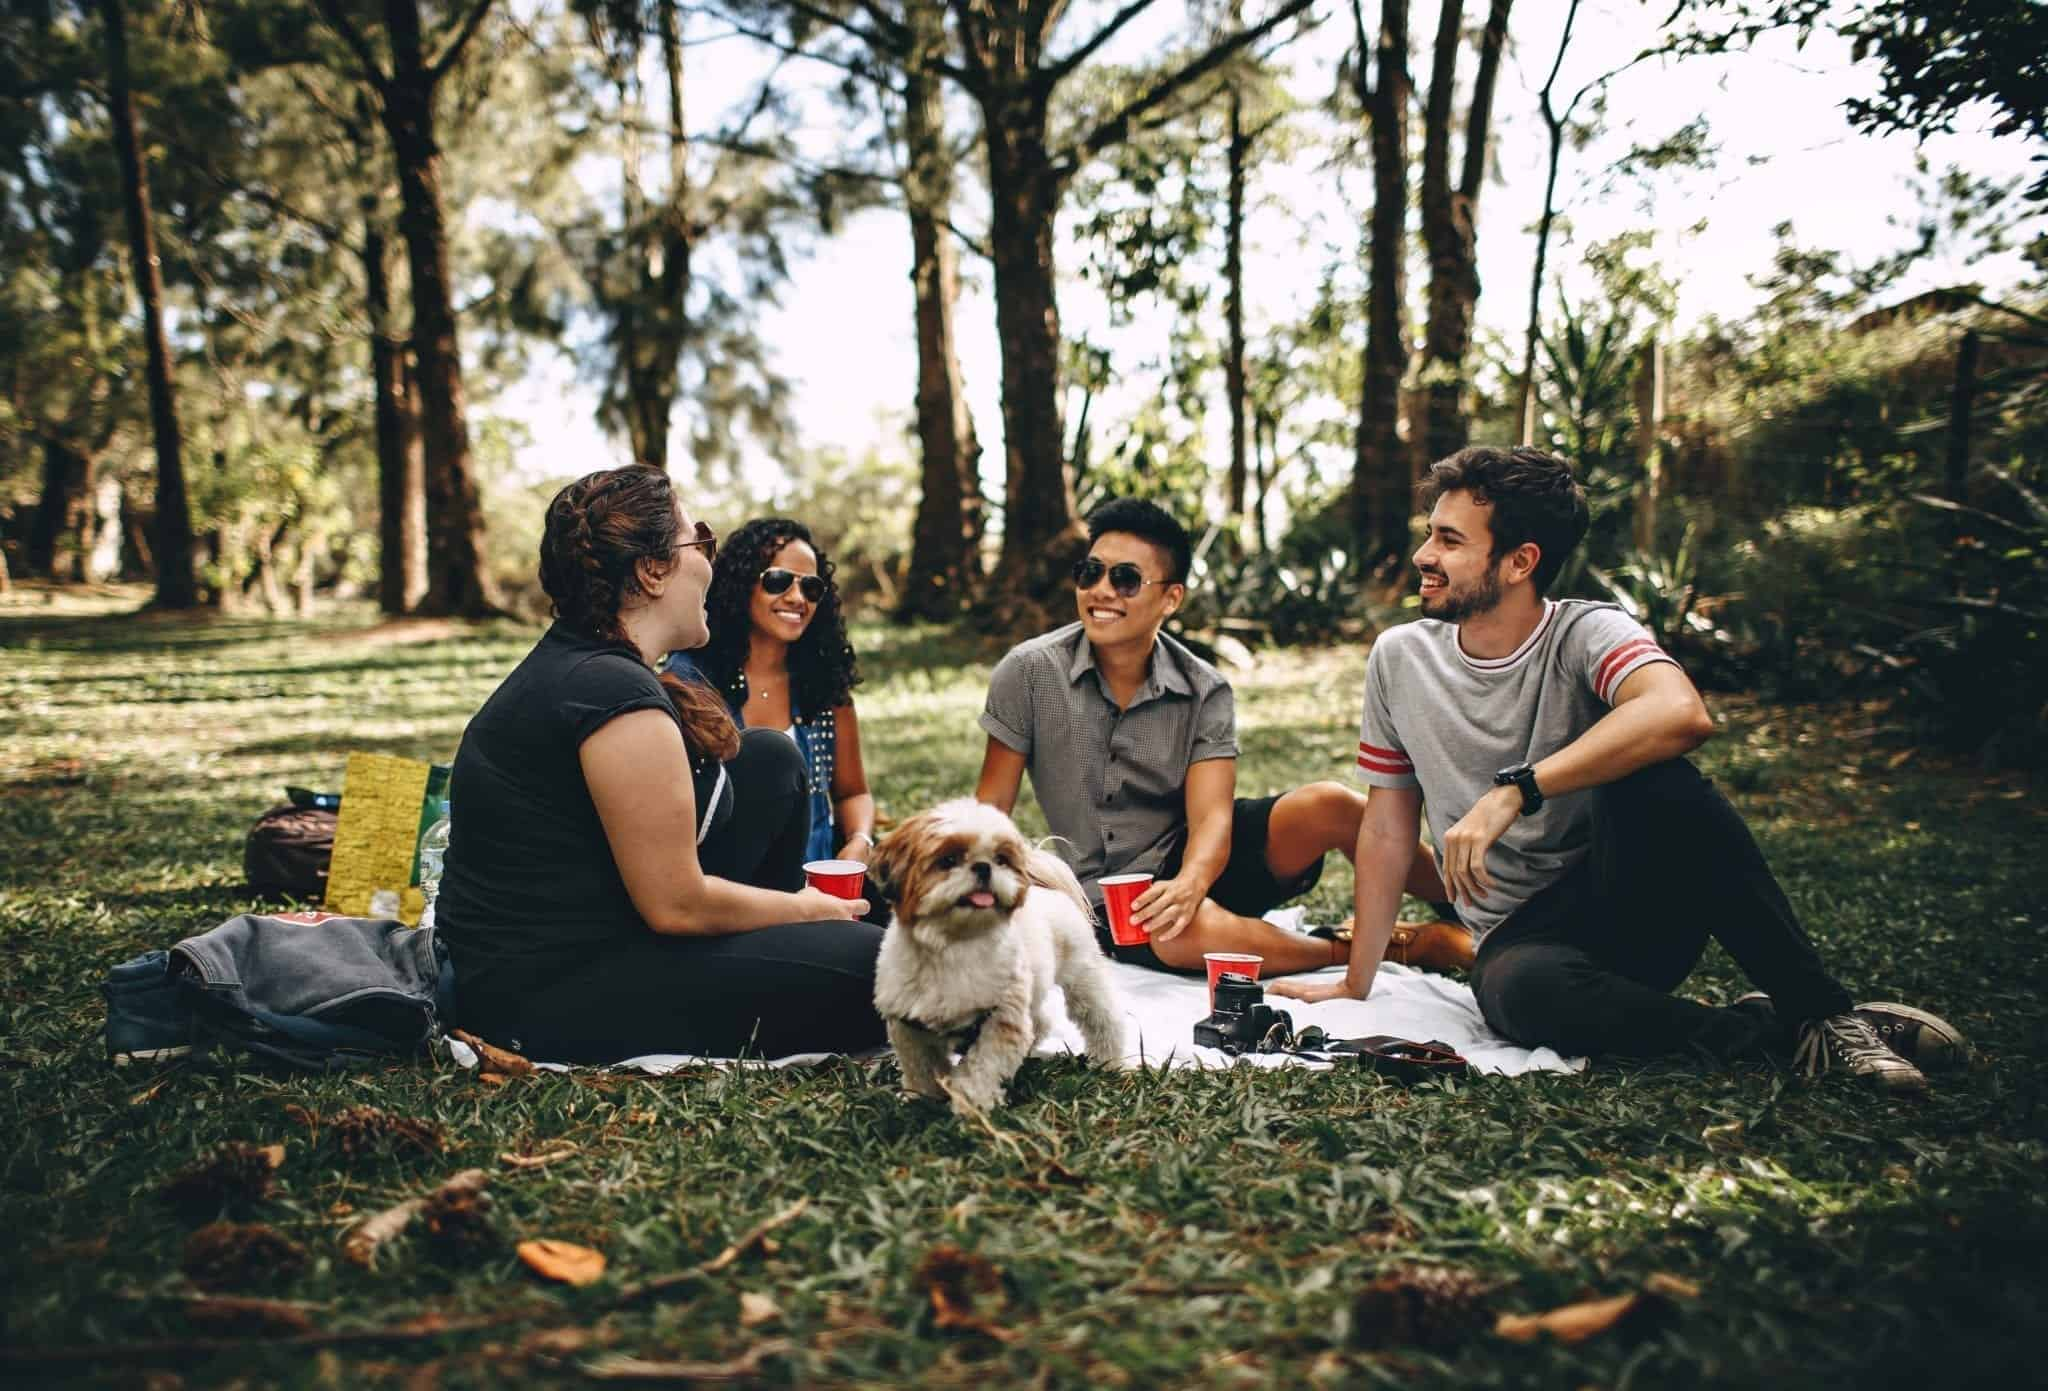 7 Summer Picnic Safety Tips For Pet Parents